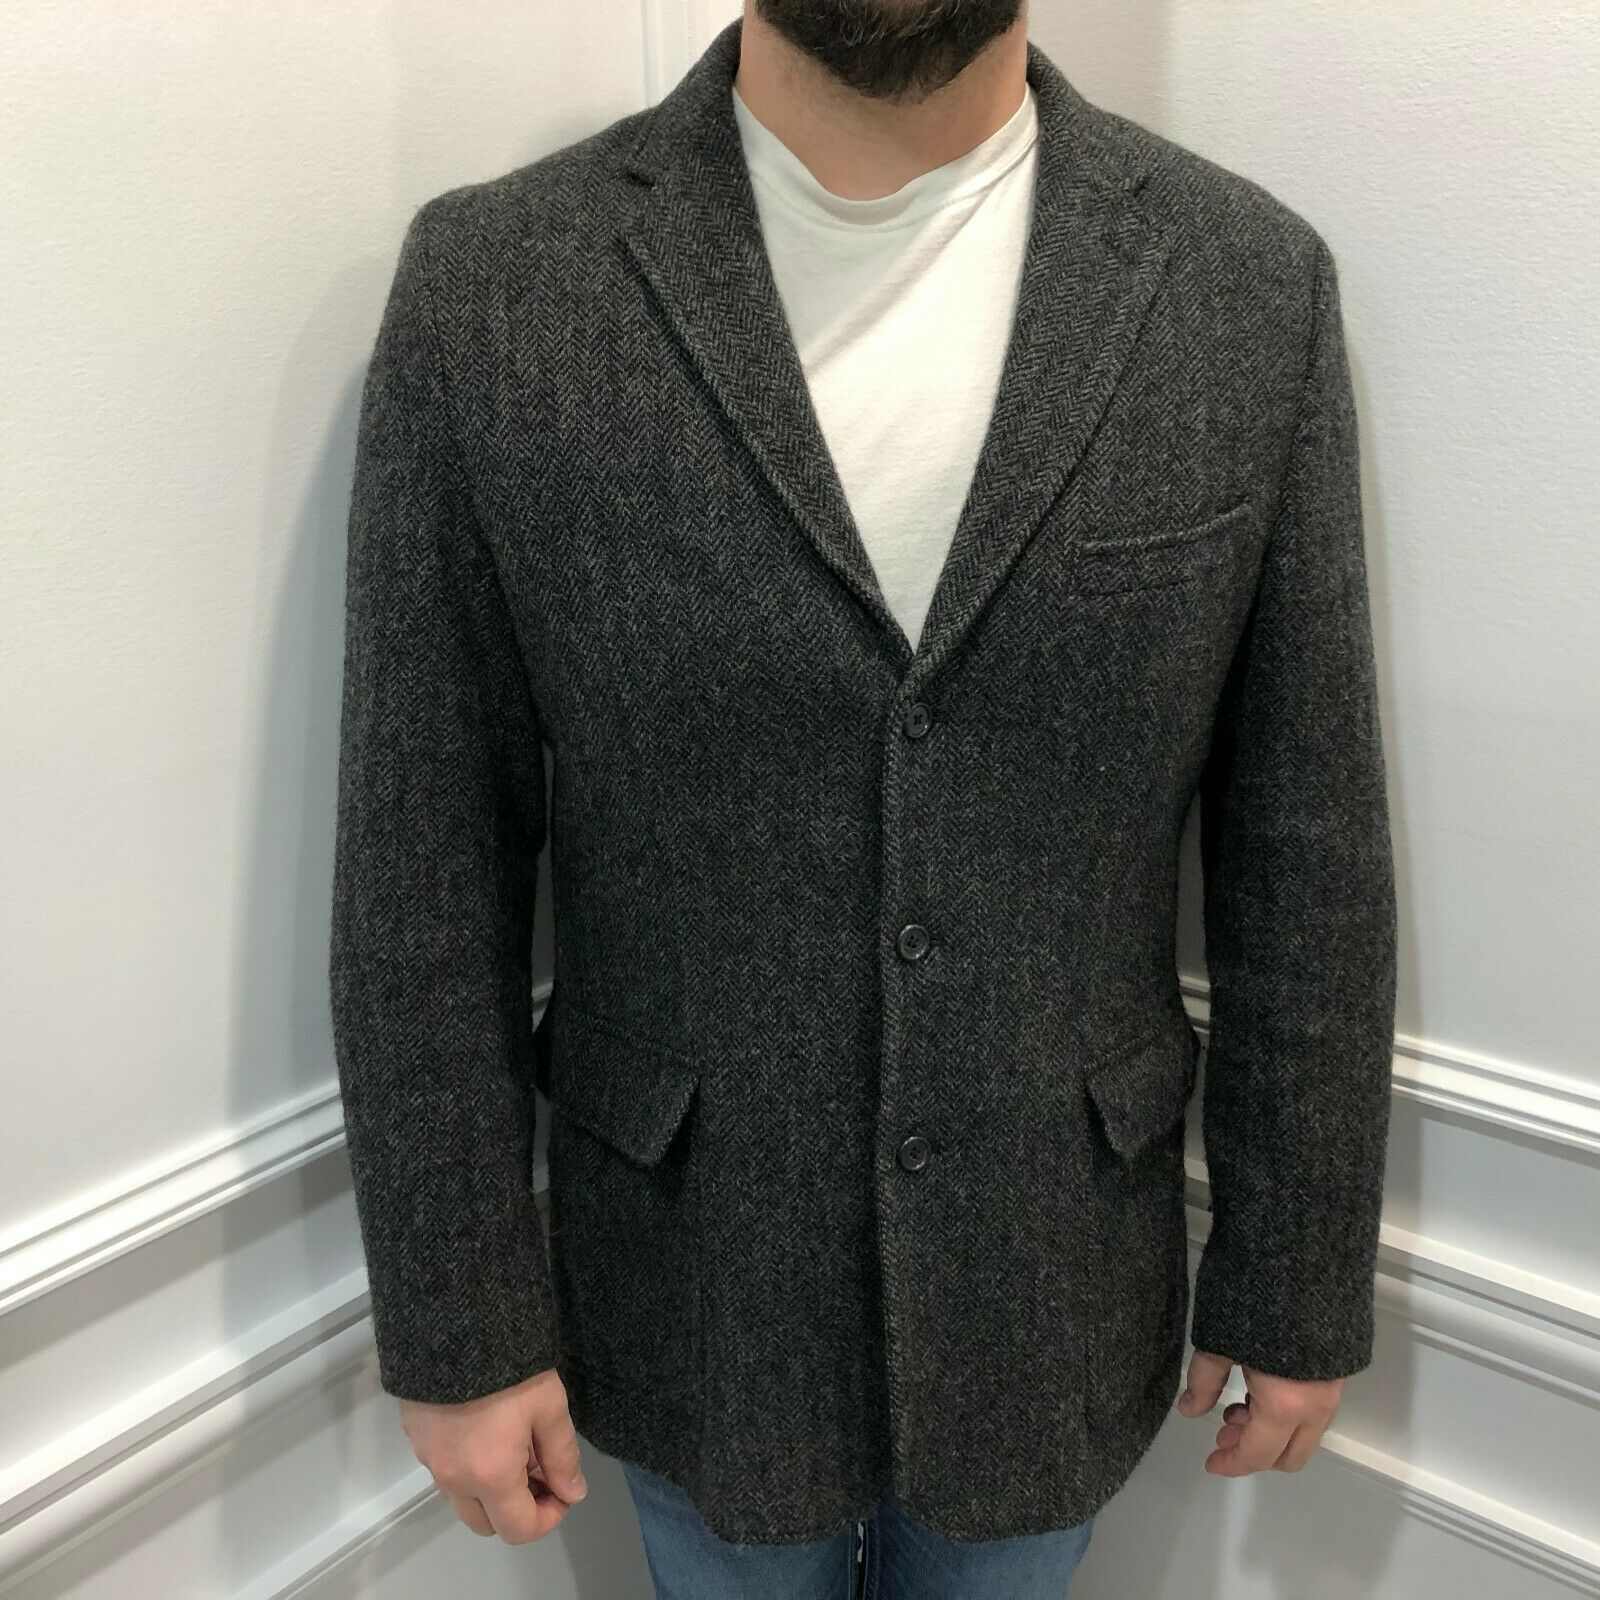 Primary image for J.Crew 42 Yorkshire Tweed Blazer Sport Jacket Moon Wool Grey England 85865